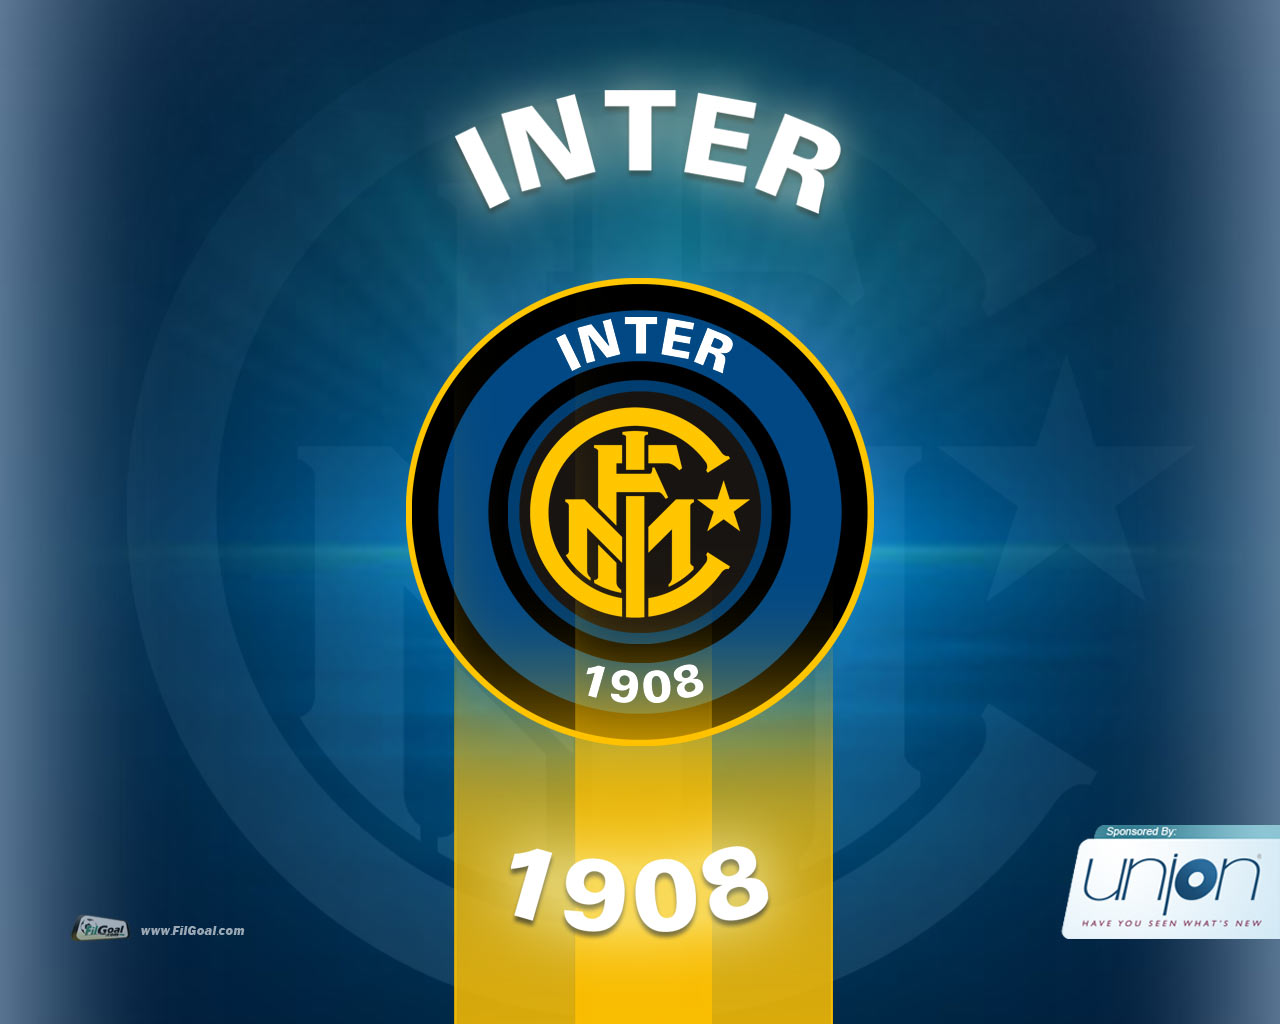 Inter Milan Wallpaper Inter Milan Wallpaper Gif 2570334 Hd Wallpaper Backgrounds Download